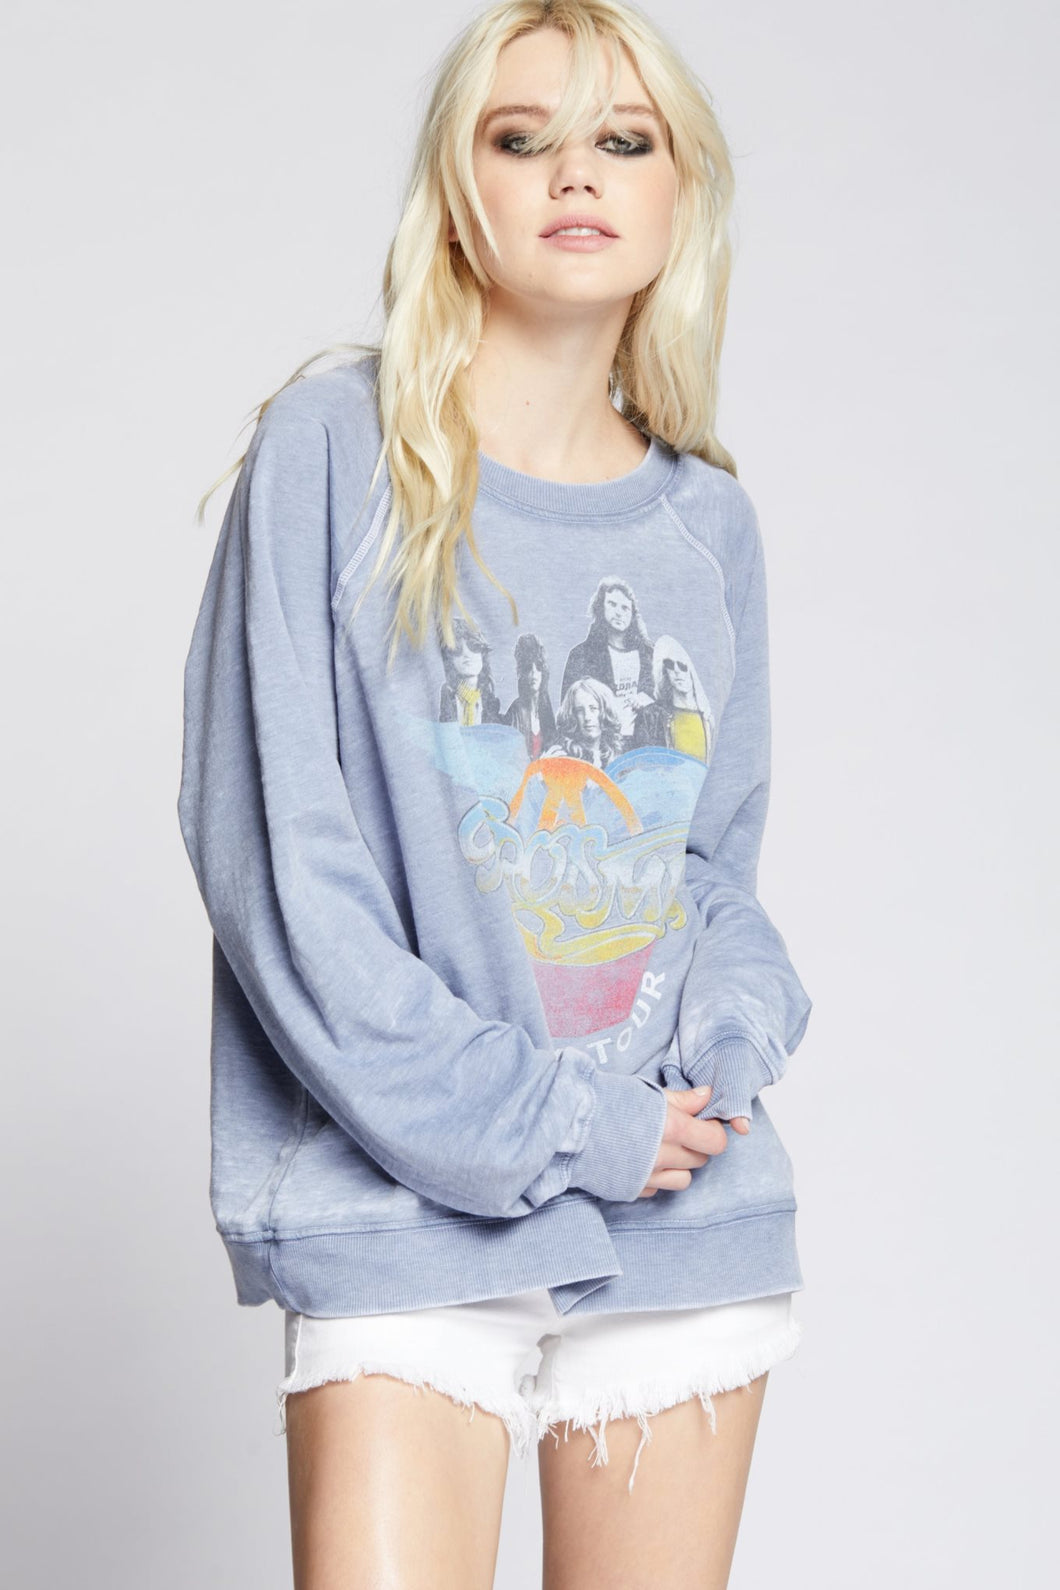 Aerosmith US '74 Tour Sweatshirt